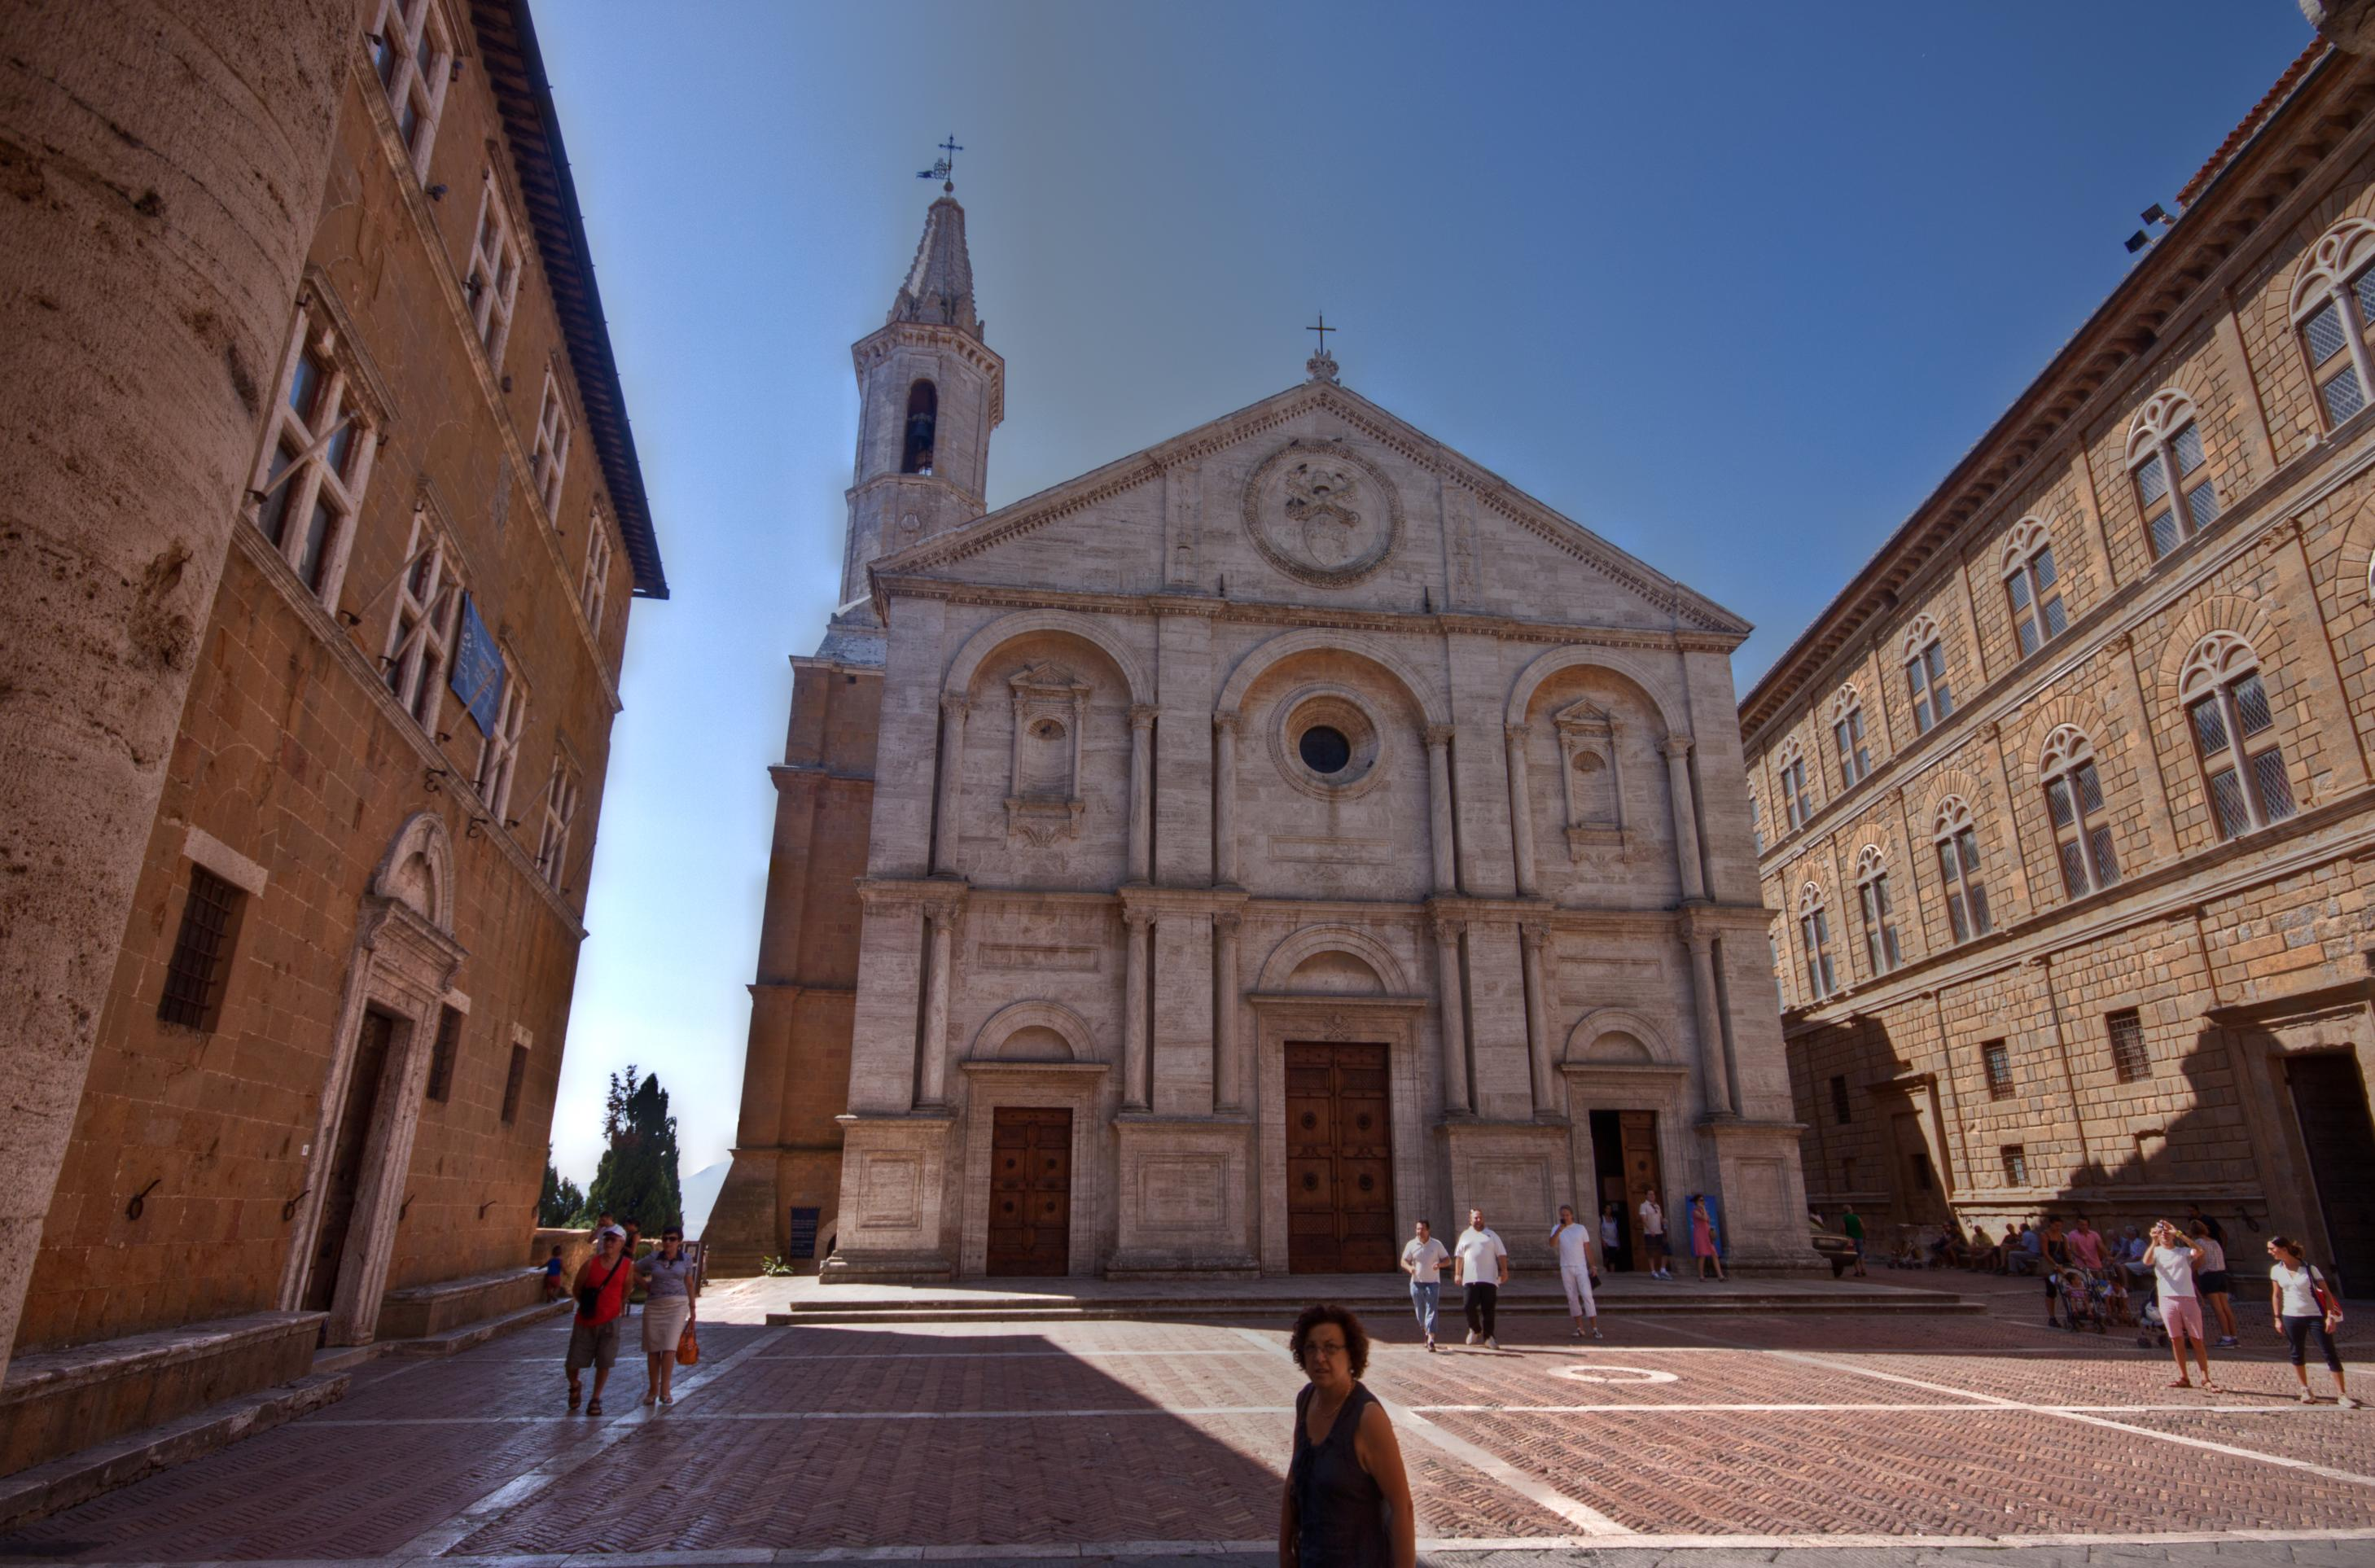 Pienza - The ideal city